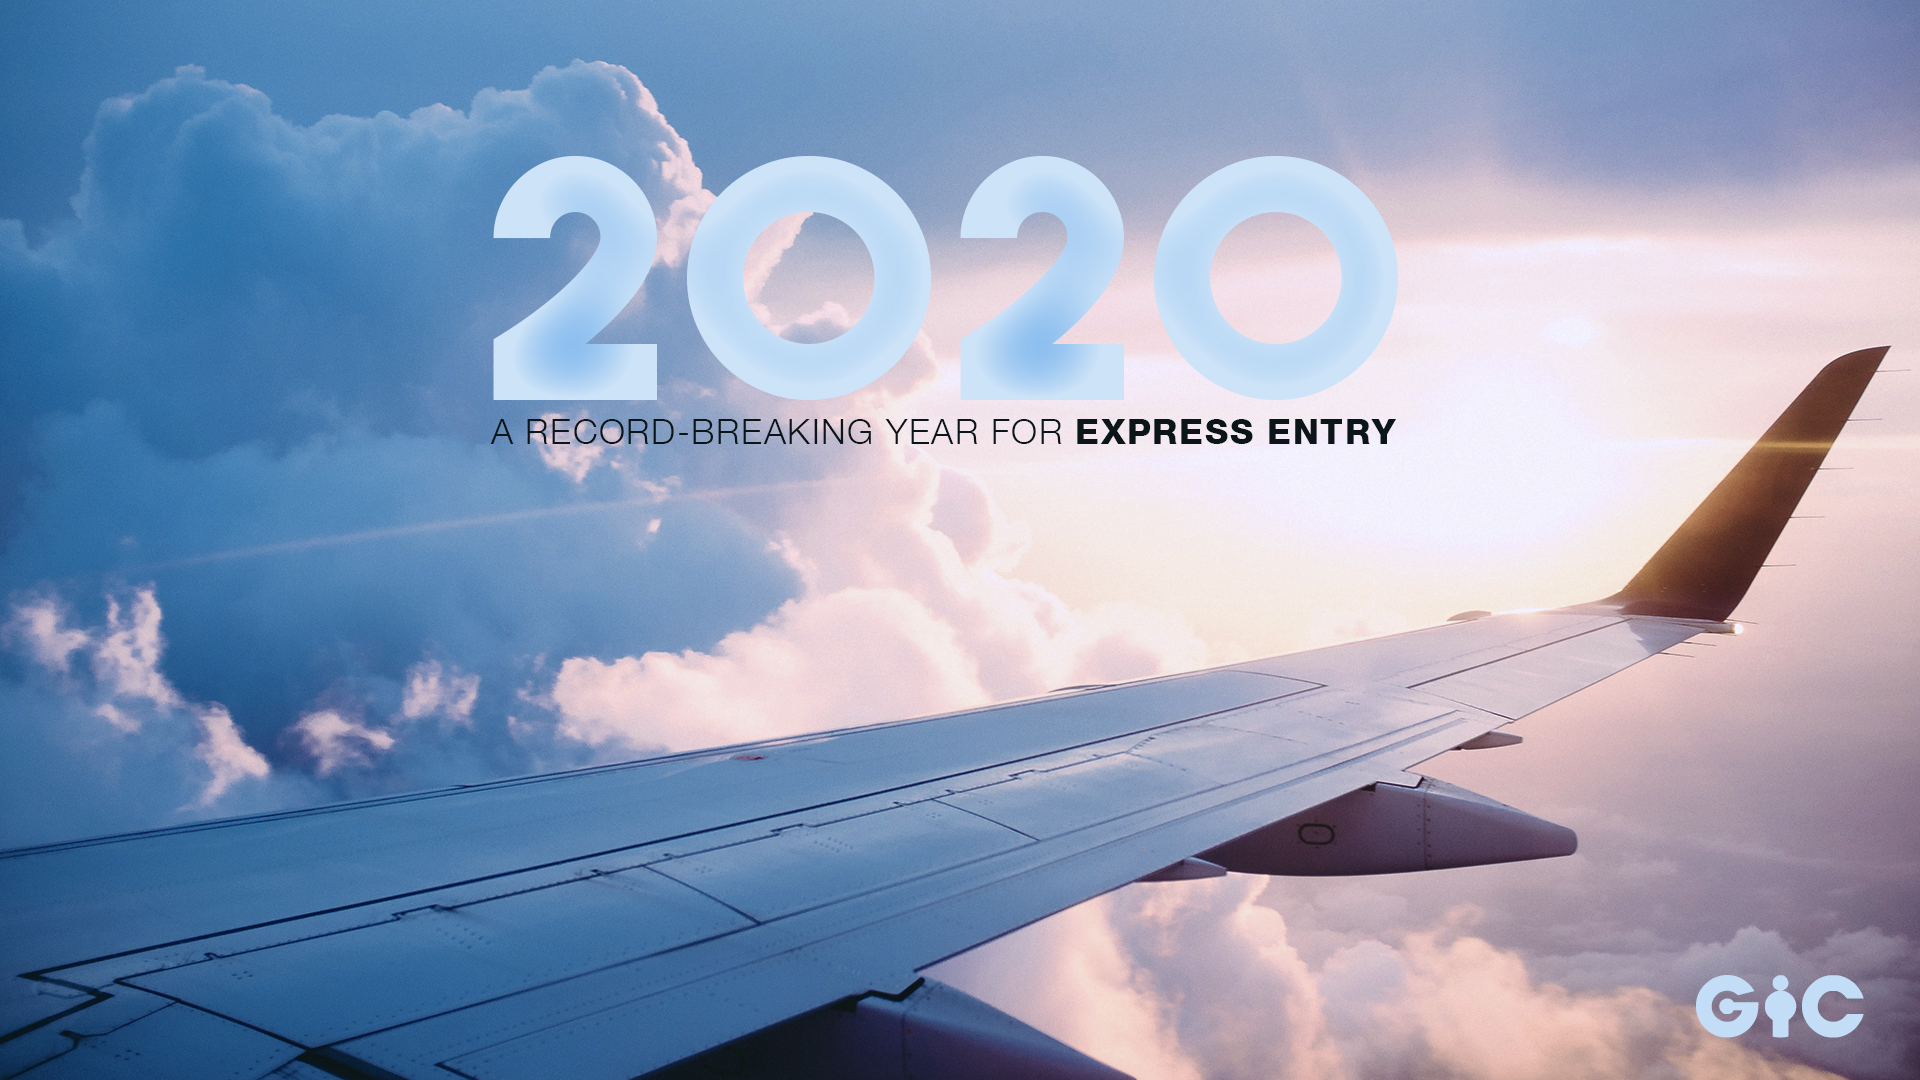 2020 a record-breaking year for Express Entry